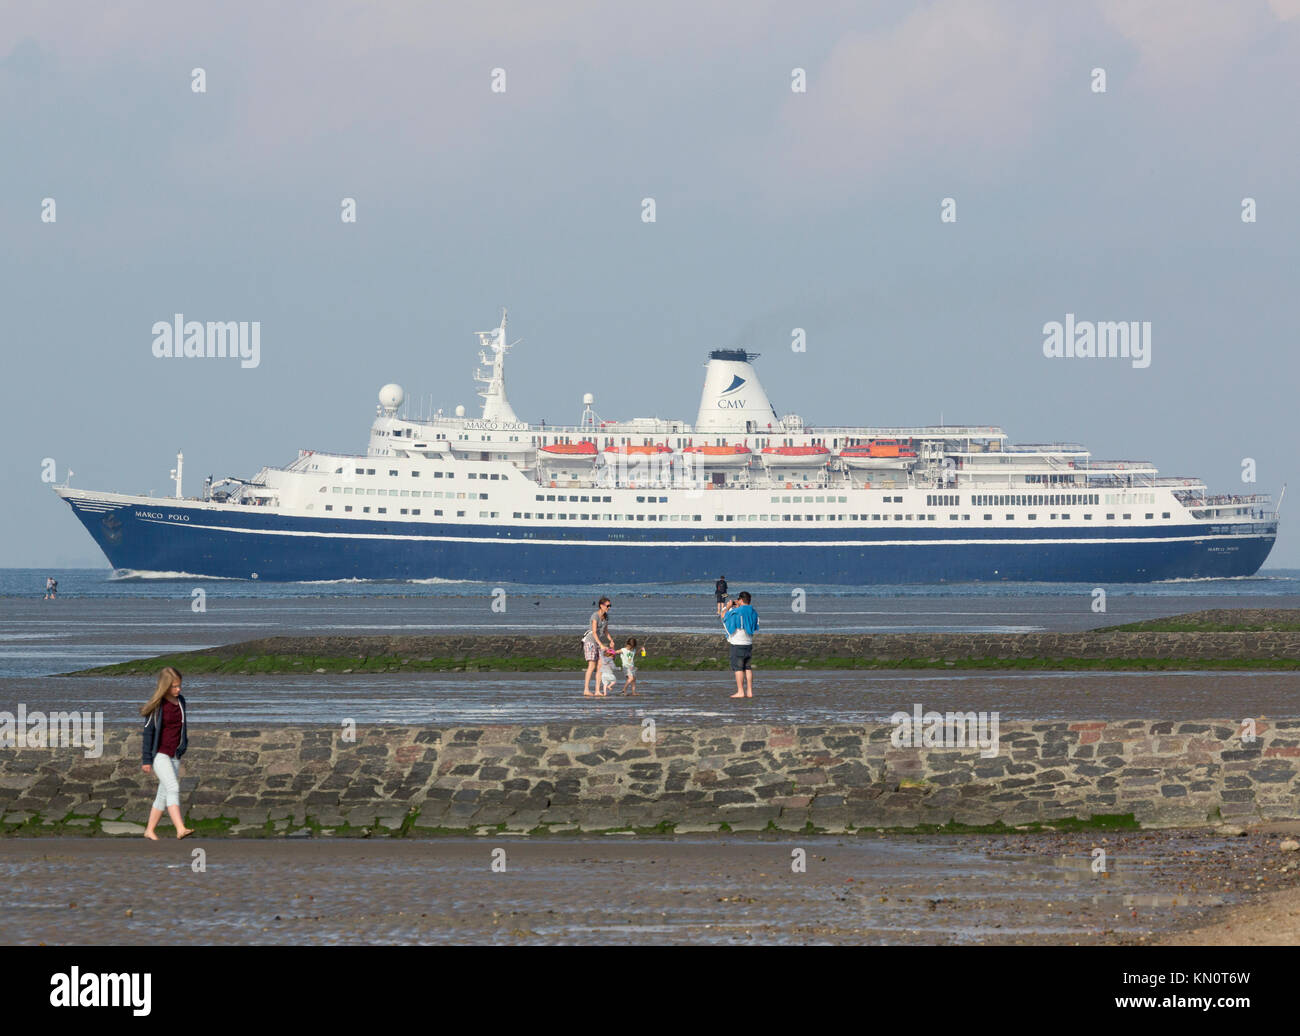 The cruise ship Marco Polo enters The North Sea from the Elb - Stock Image